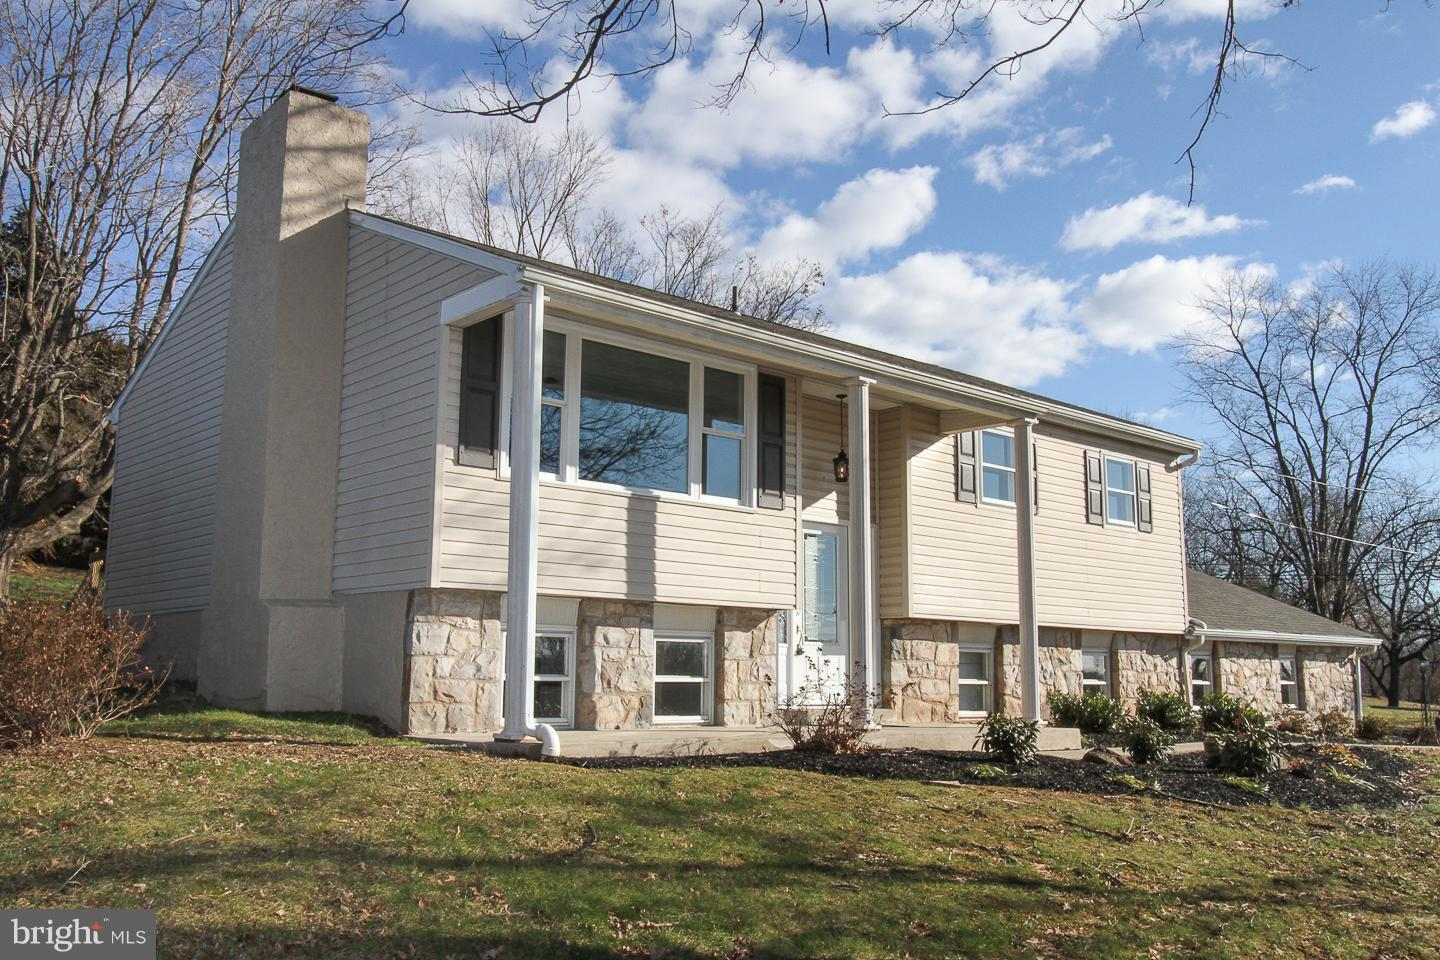 575 SWAMP CREEK ROAD, BECHTELSVILLE, PA 19505